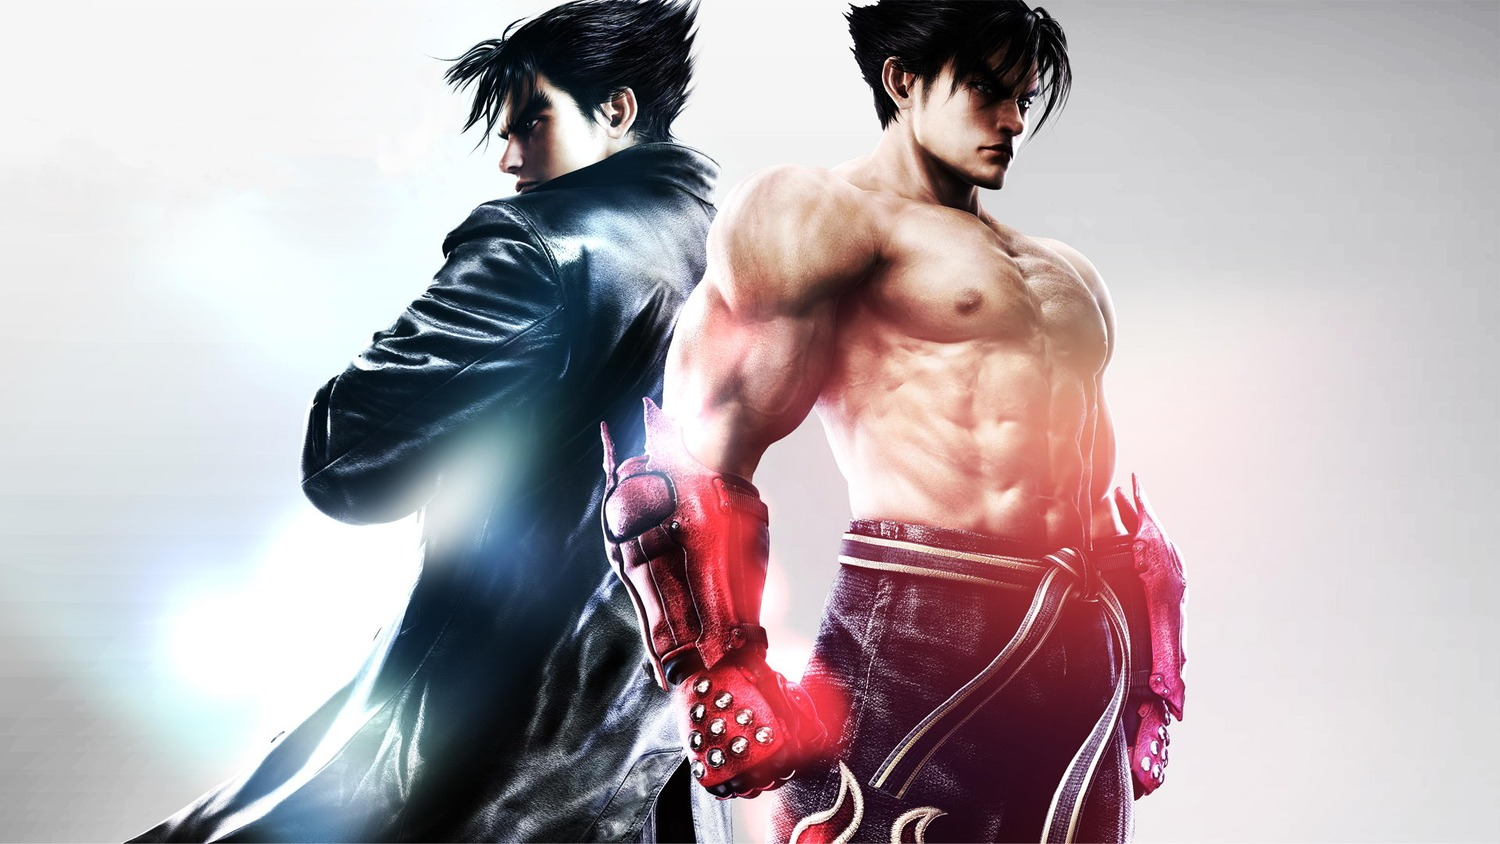 Cg Jin Kazama Male Tekken Wallpaper Jin Kazama Tekken 8 1500x844 Wallpaper Teahub Io Vote for tekken 7 as best fighting game of the year! cg jin kazama male tekken wallpaper